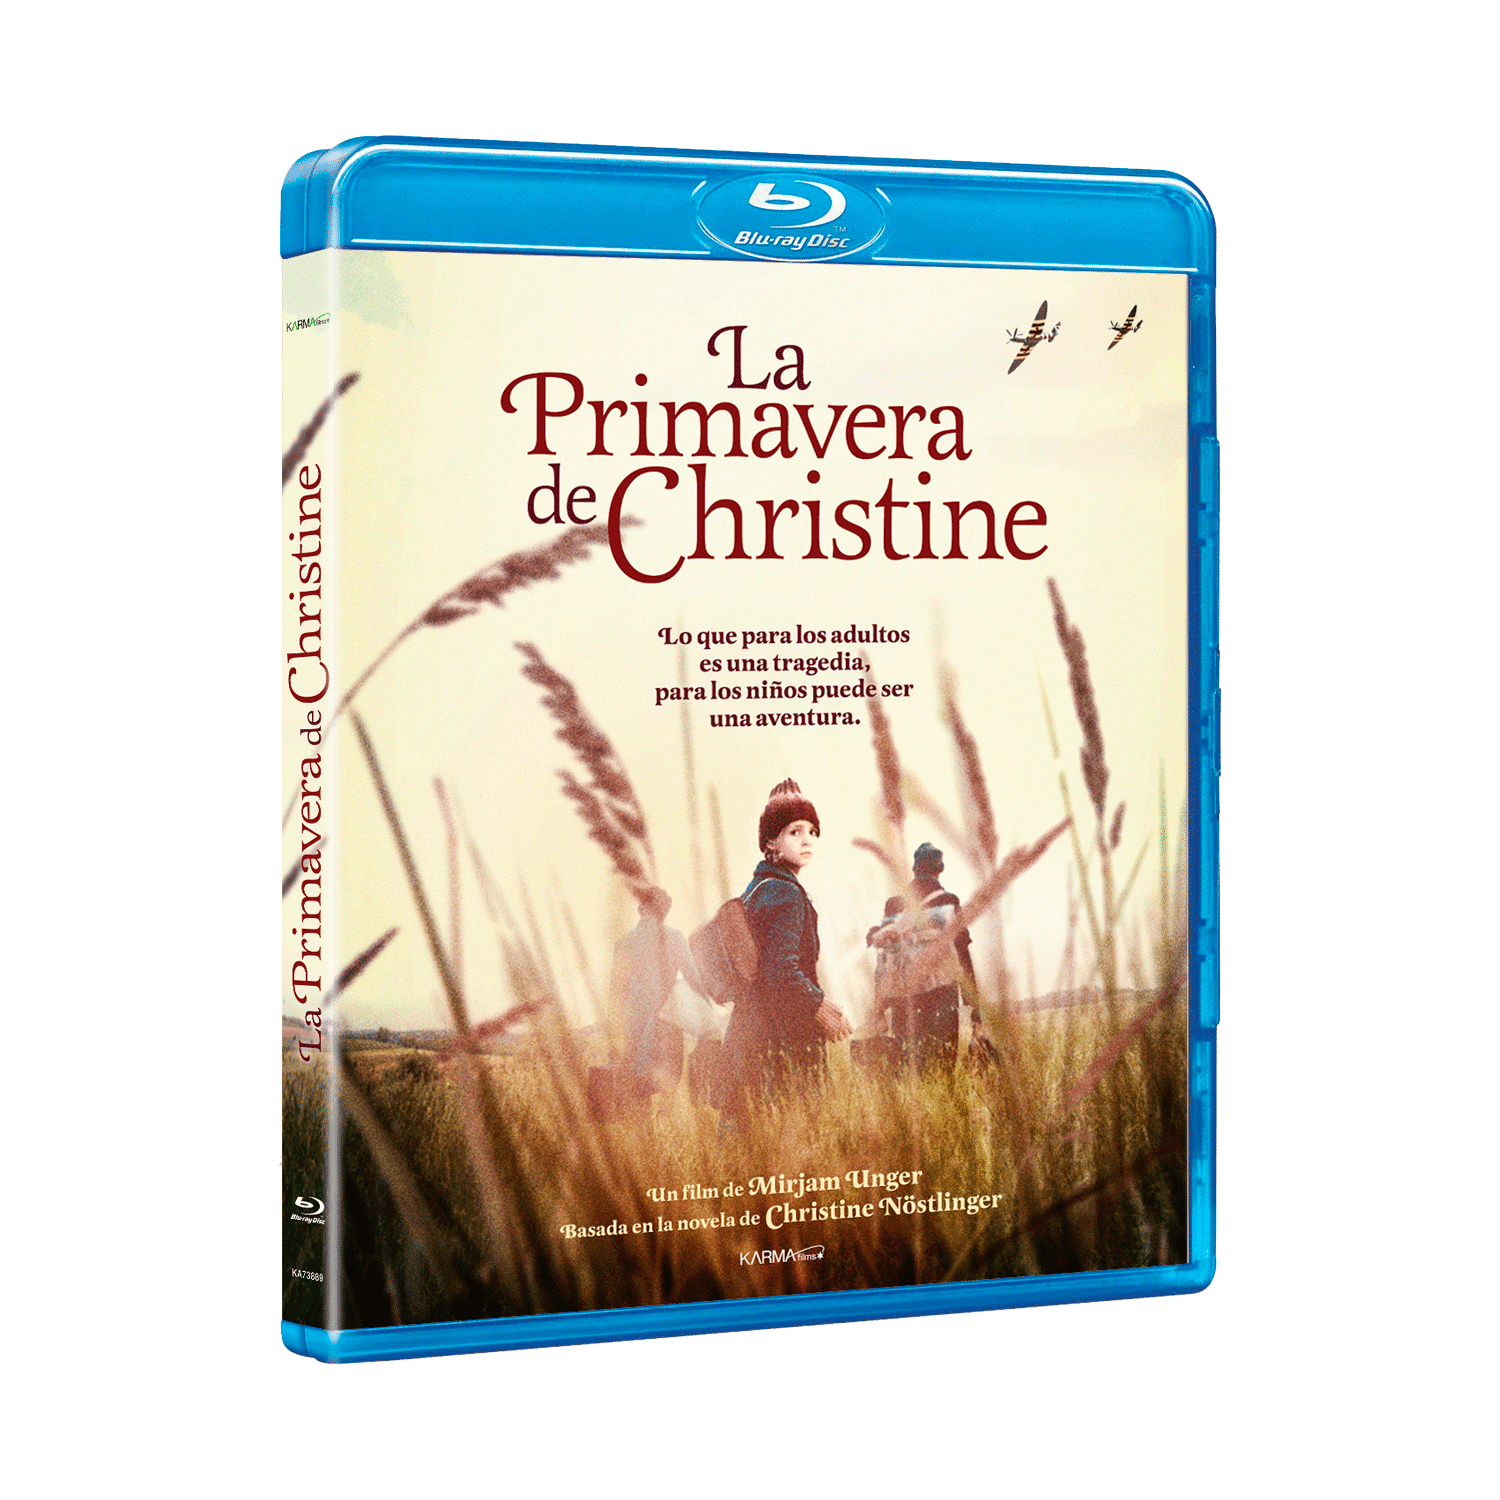 LA_PRIMAVERA_DE_CHRISTINE_BLURAY